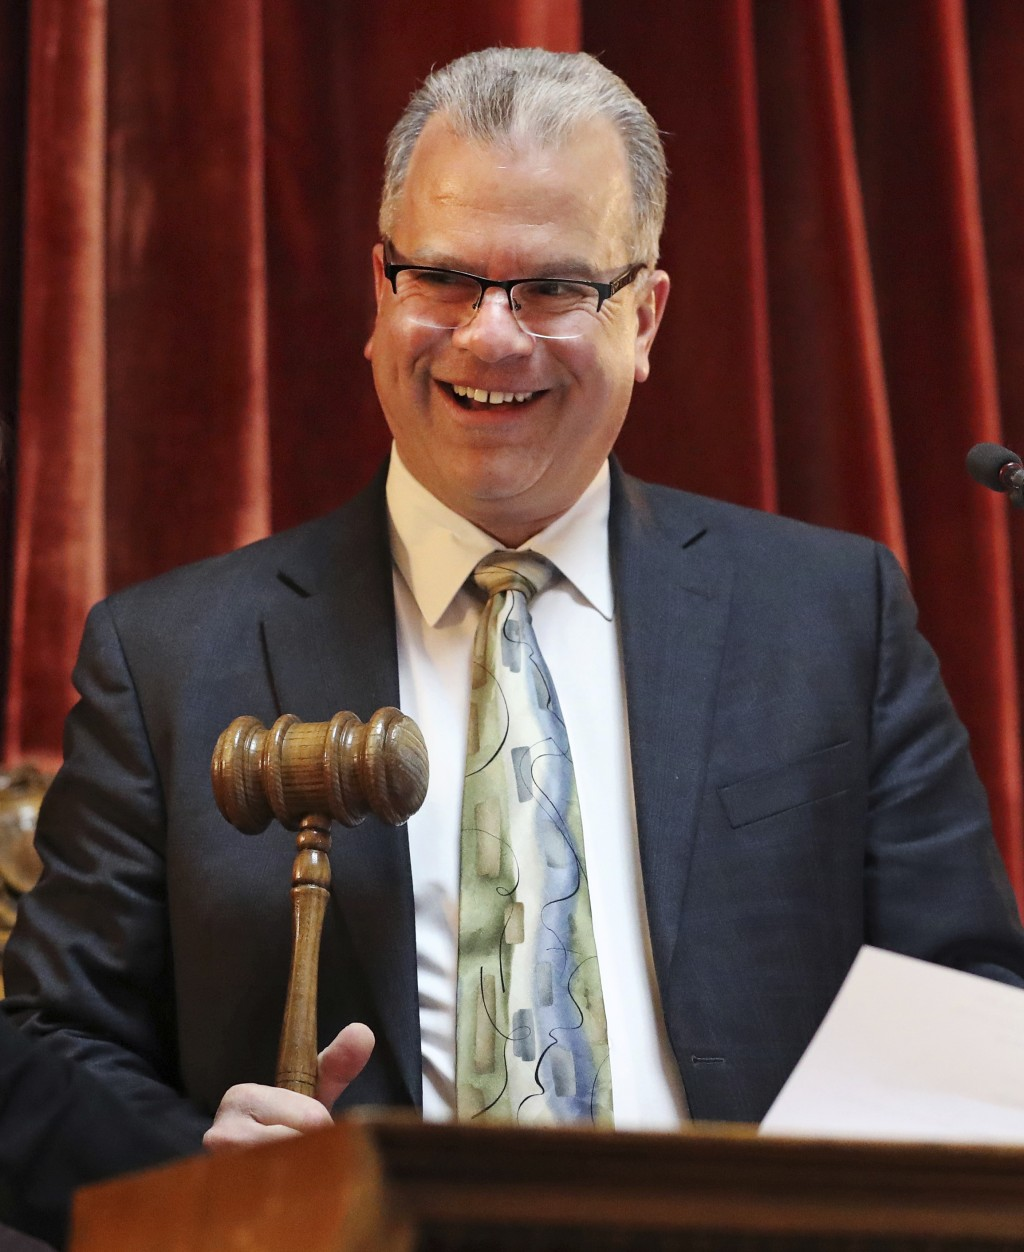 FILE- In this March 12, 2019, file photo Rhode Island Speaker of the House Nicholas Mattiello gavels open a late afternoon session on gaming at the St